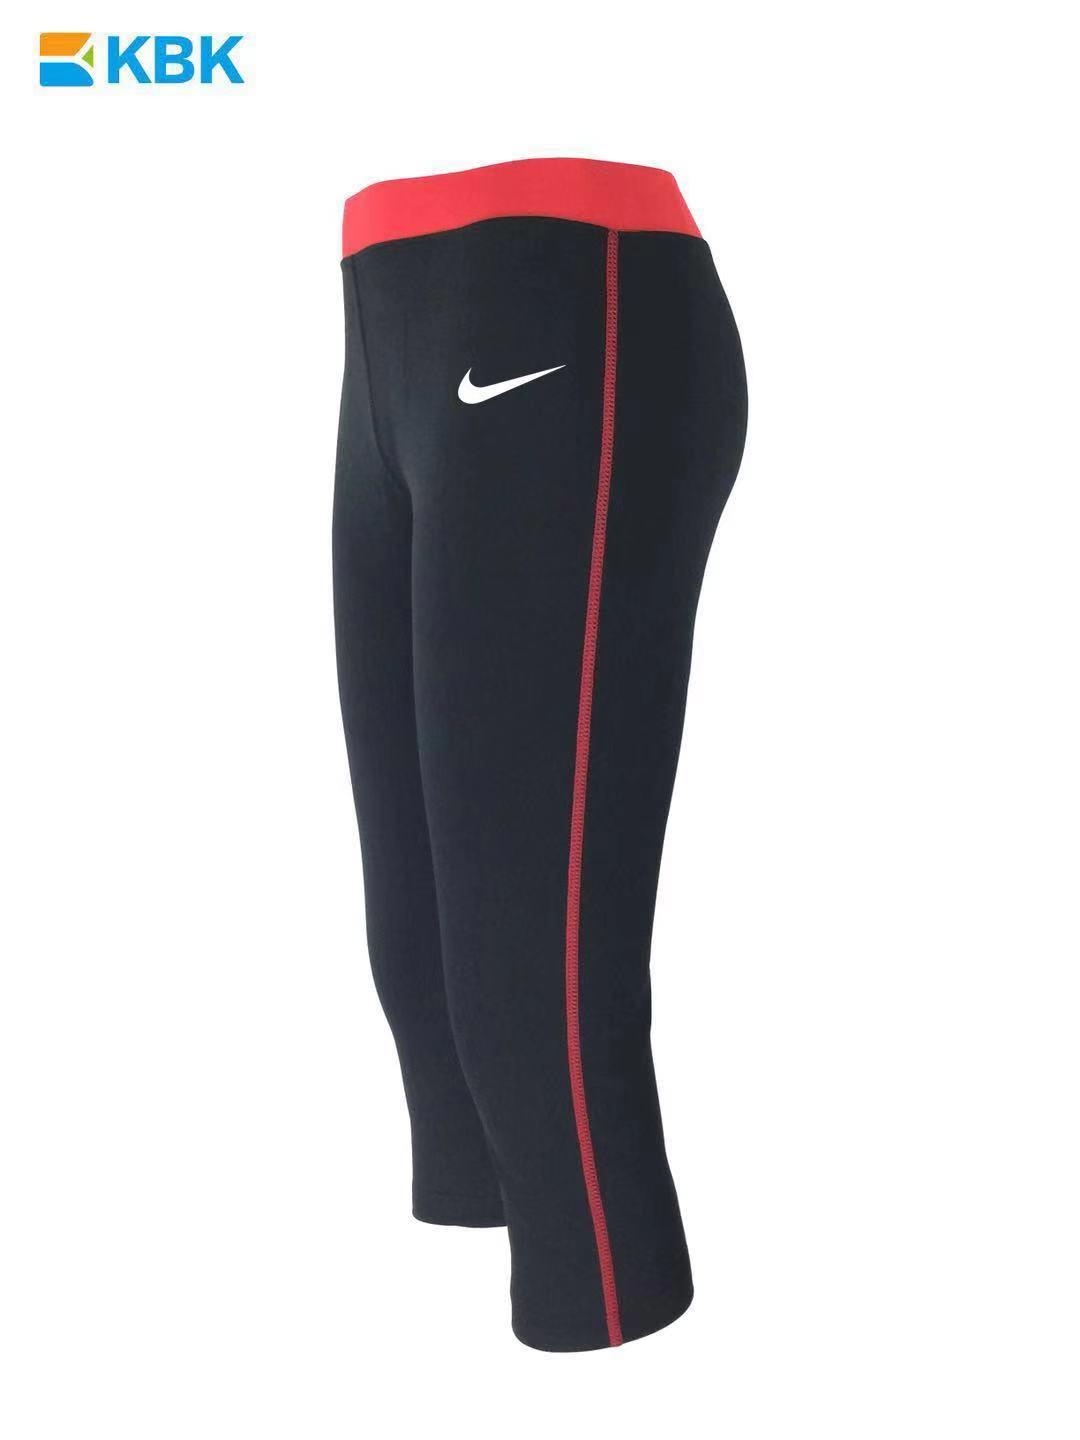 adeccf47d7c Womens Sports Pants for sale - Sports Pants for Women online brands ...